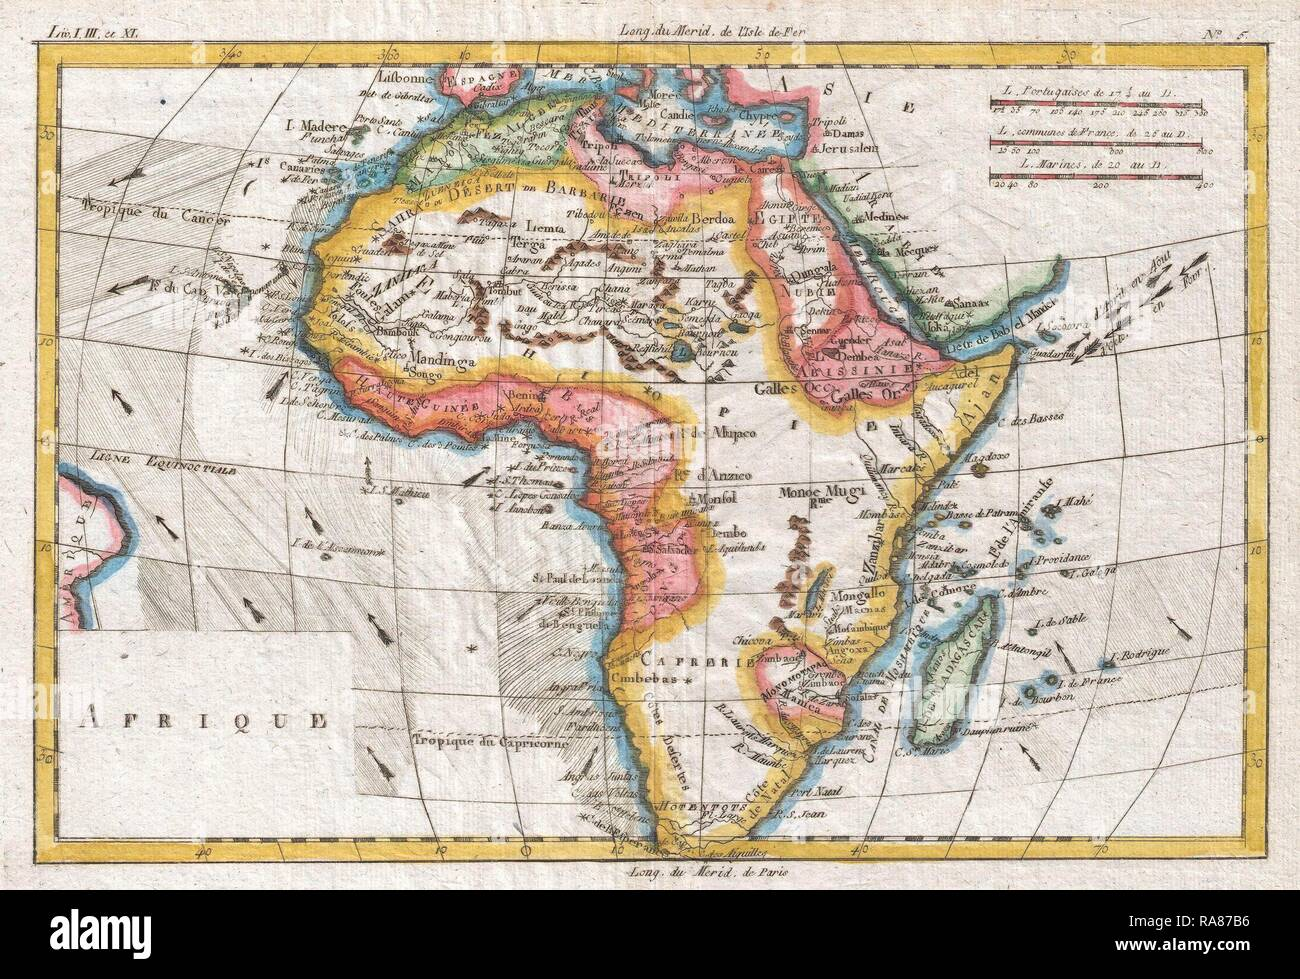 1780, Raynal and Bonne Map of Africa, Rigobert Bonne 1727 – 1794, one of the most important cartographers of the late reimagined - Stock Image